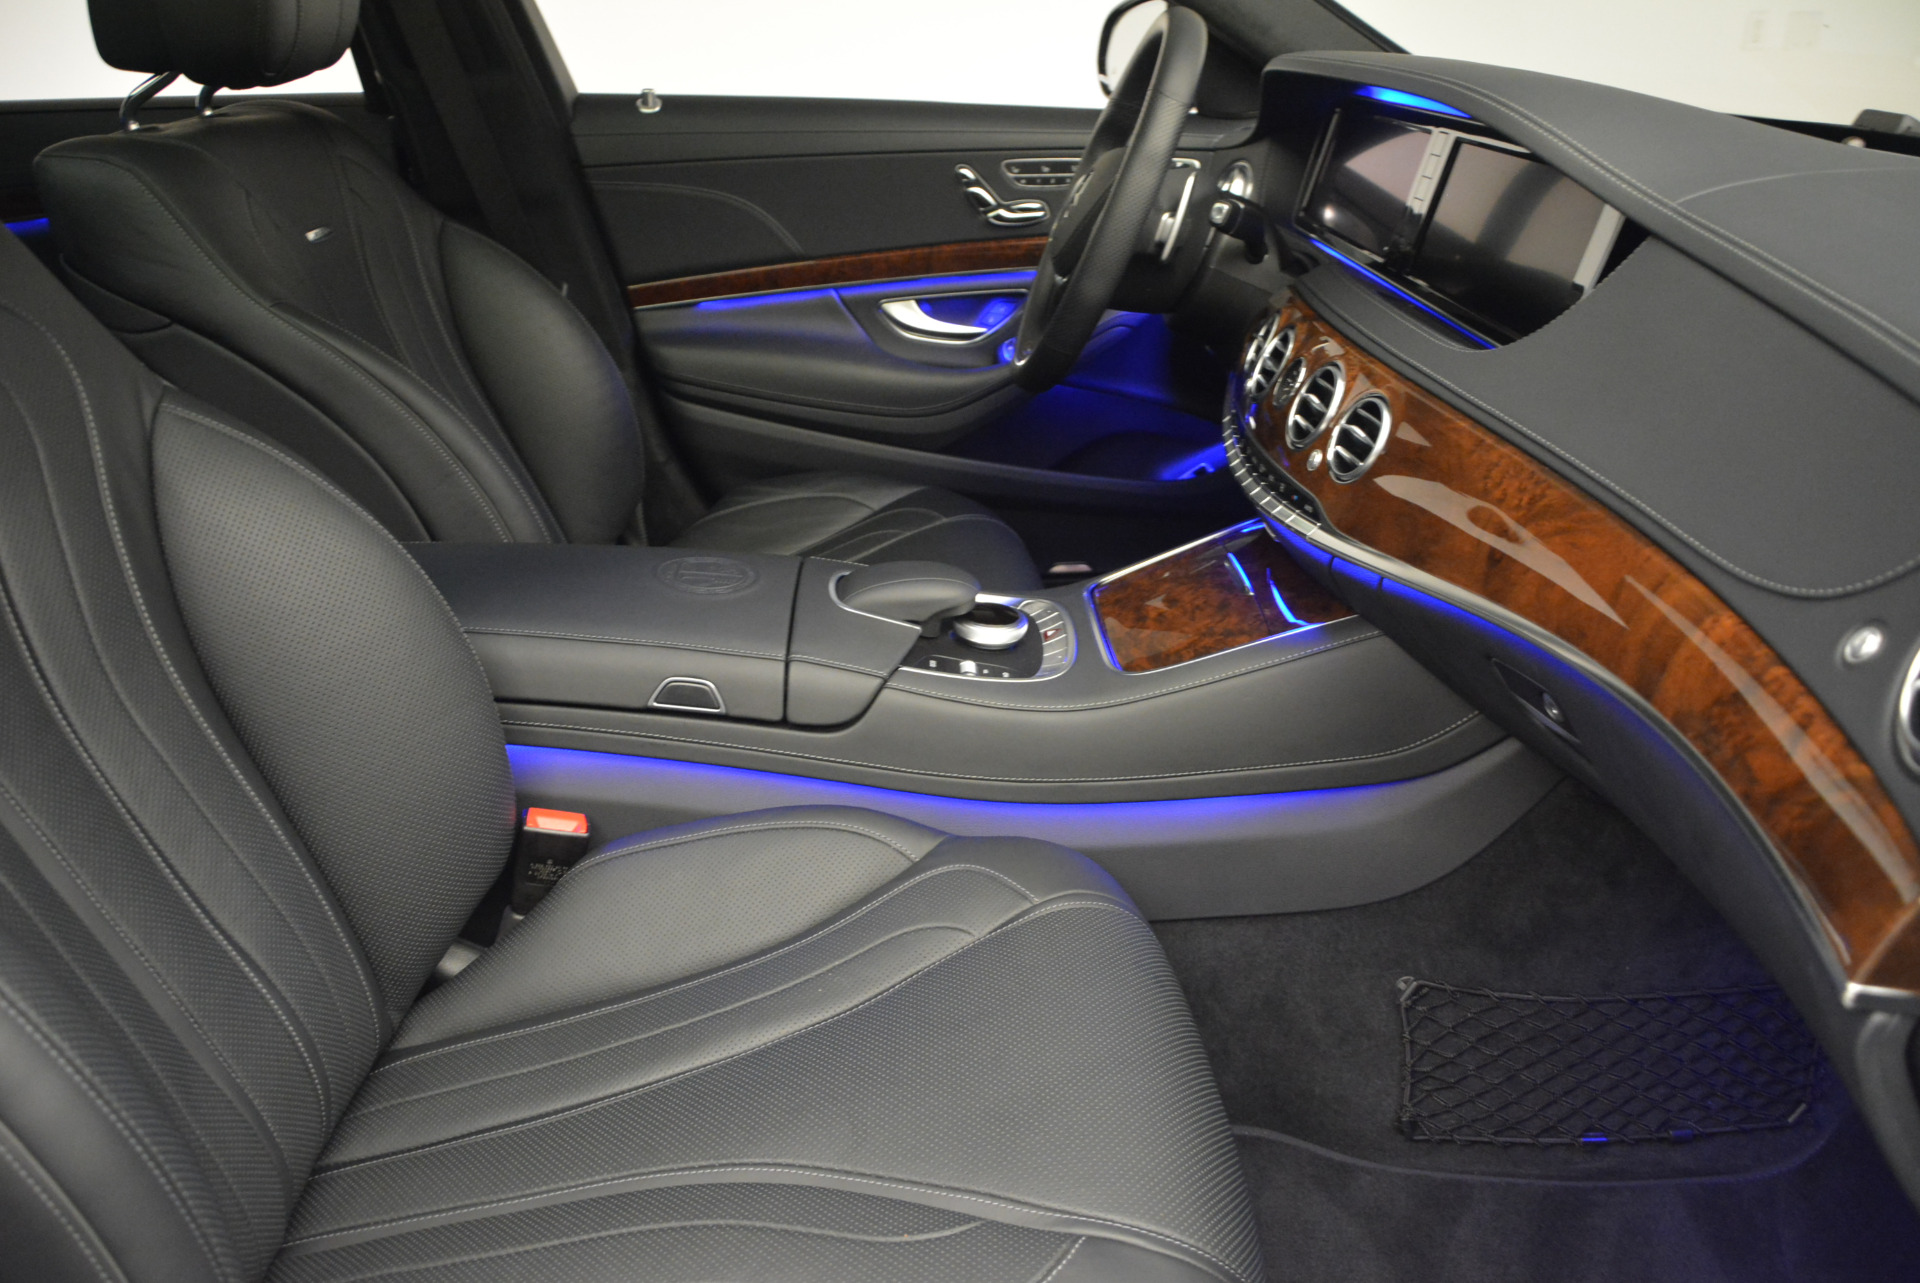 Used 2014 Mercedes Benz S-Class S 63 AMG For Sale In Greenwich, CT 912_p24